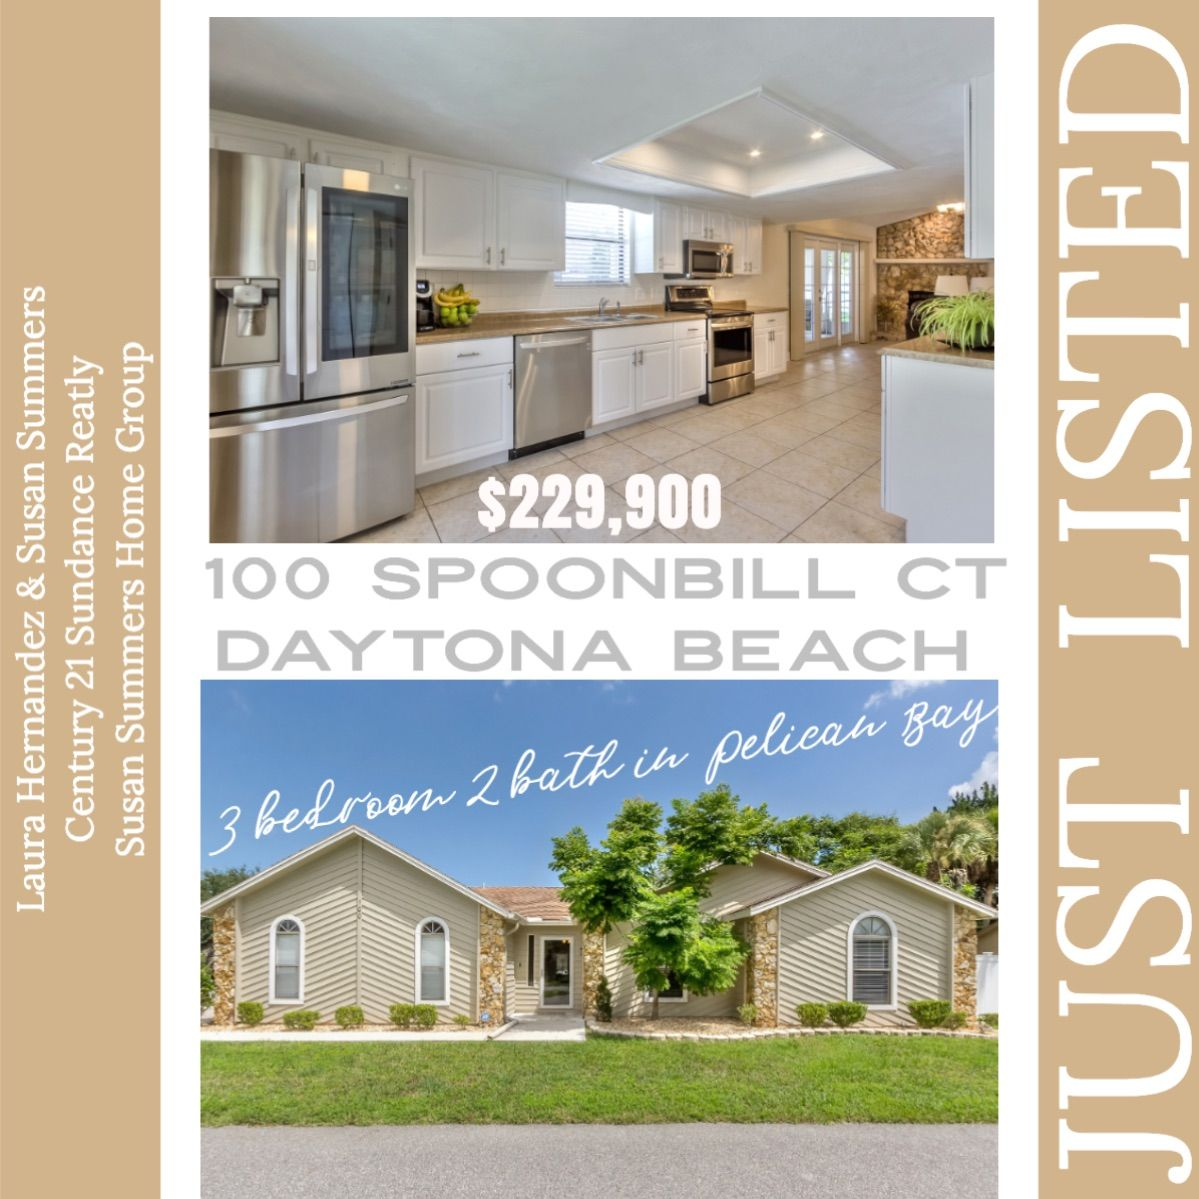 #justlisted #forsale #realestate #homesweethome #century21 #buyahometoday